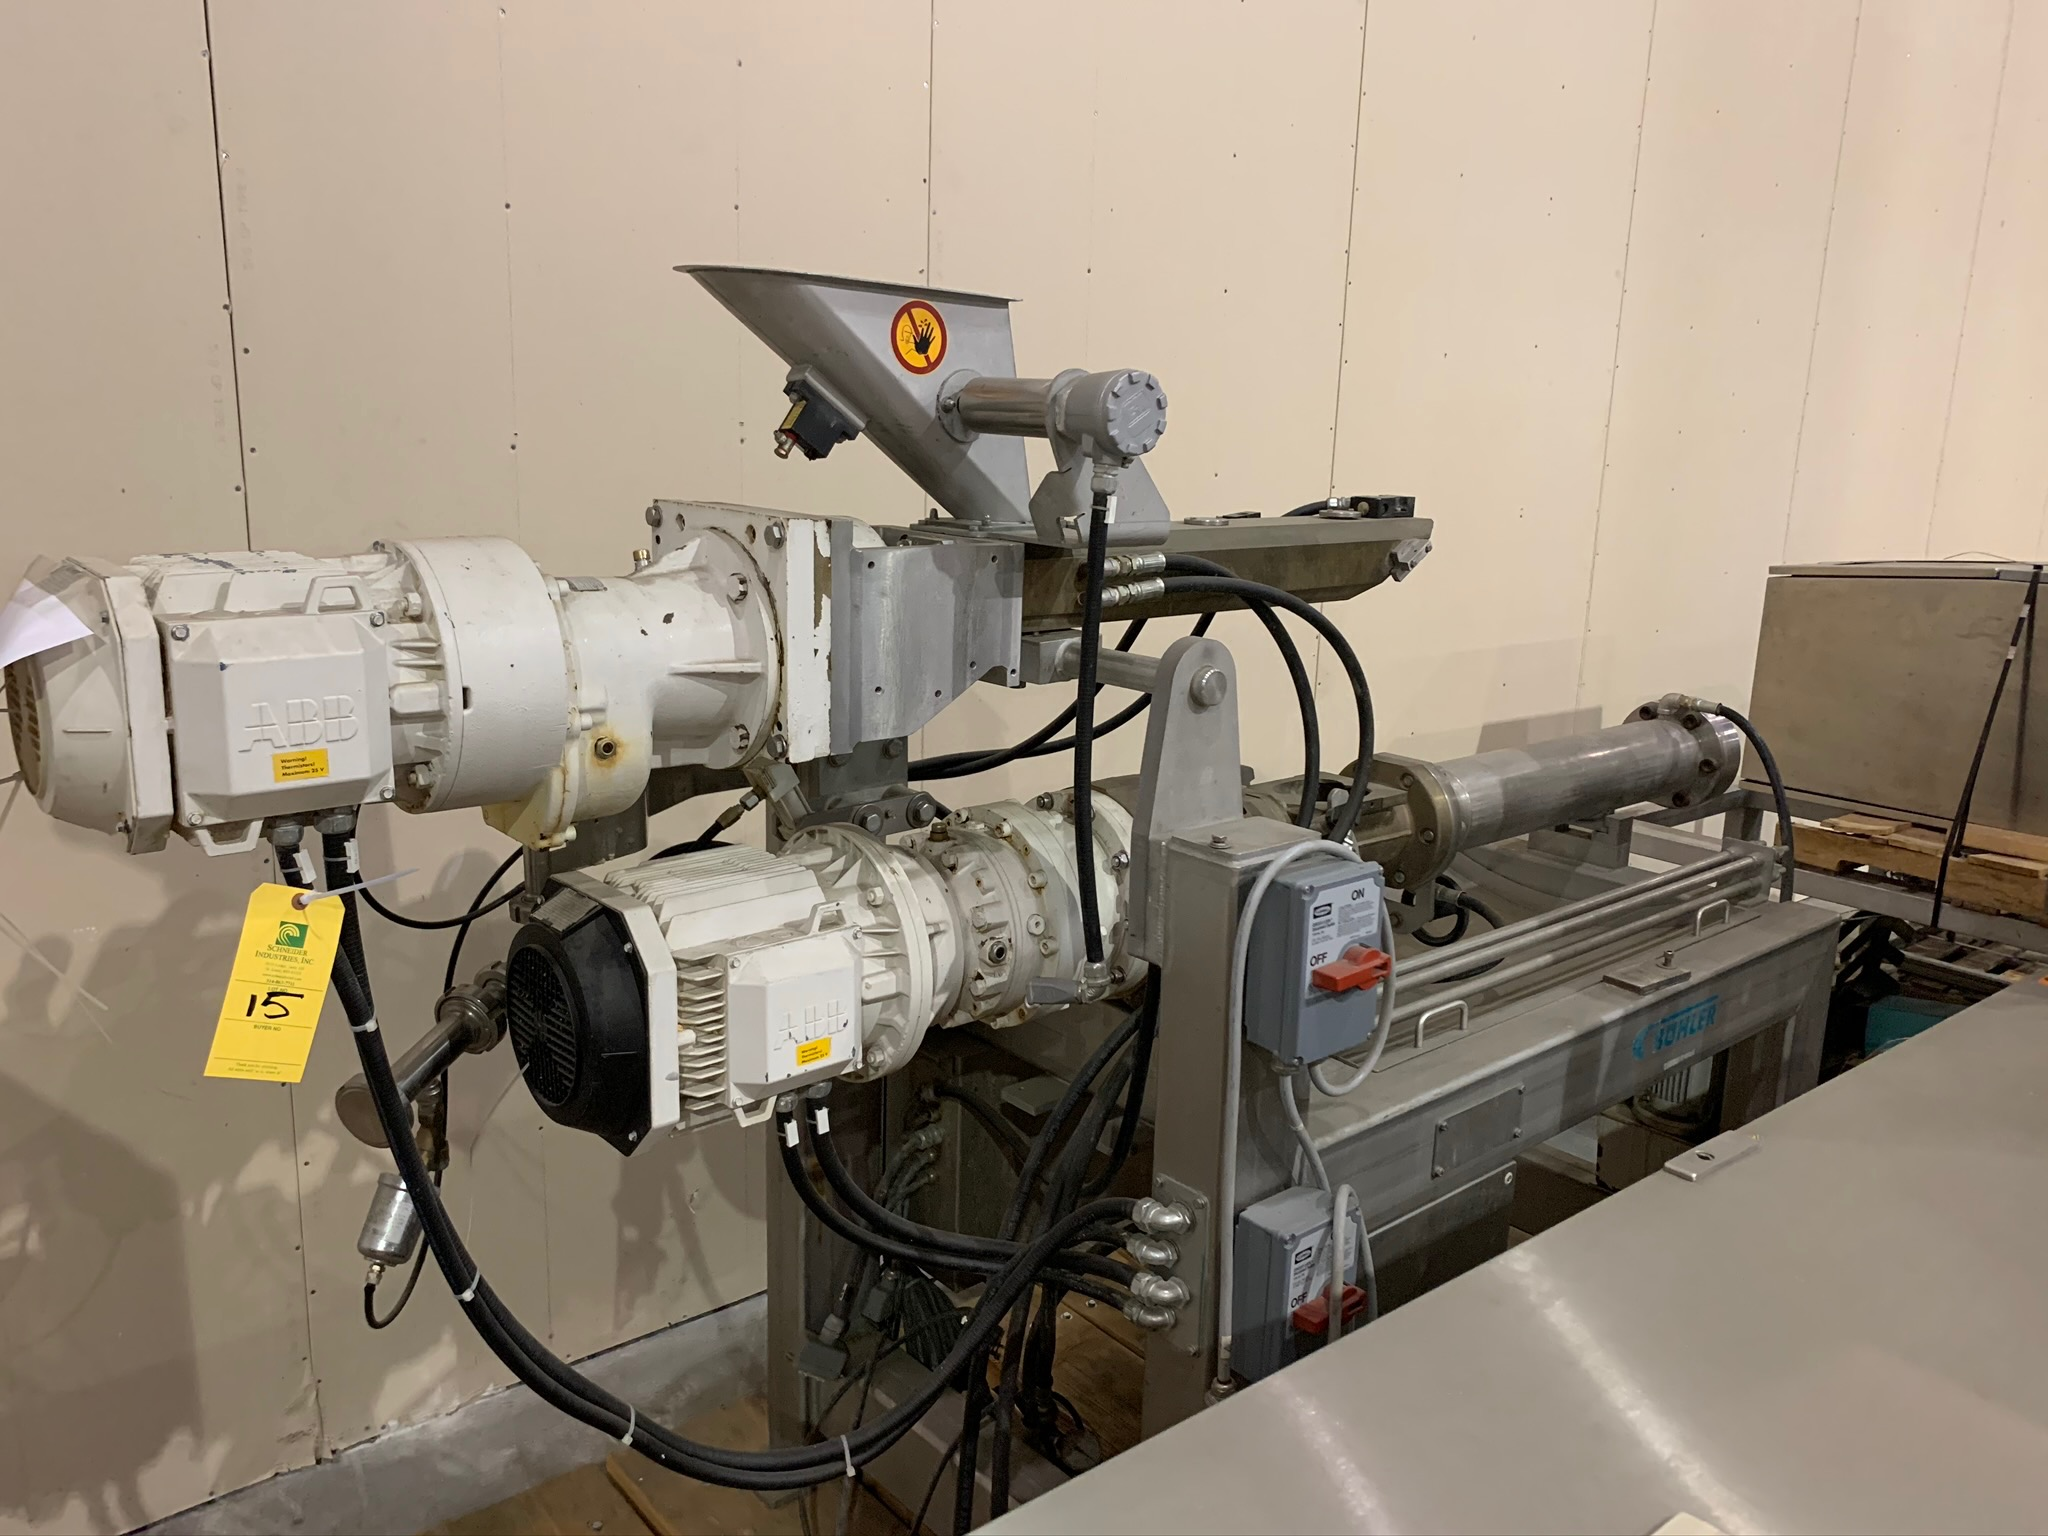 Buhler Twin Screw Extruder Model M-MN-400 S/N 10321928 with Control Panels and Auger Cart, with (Rig